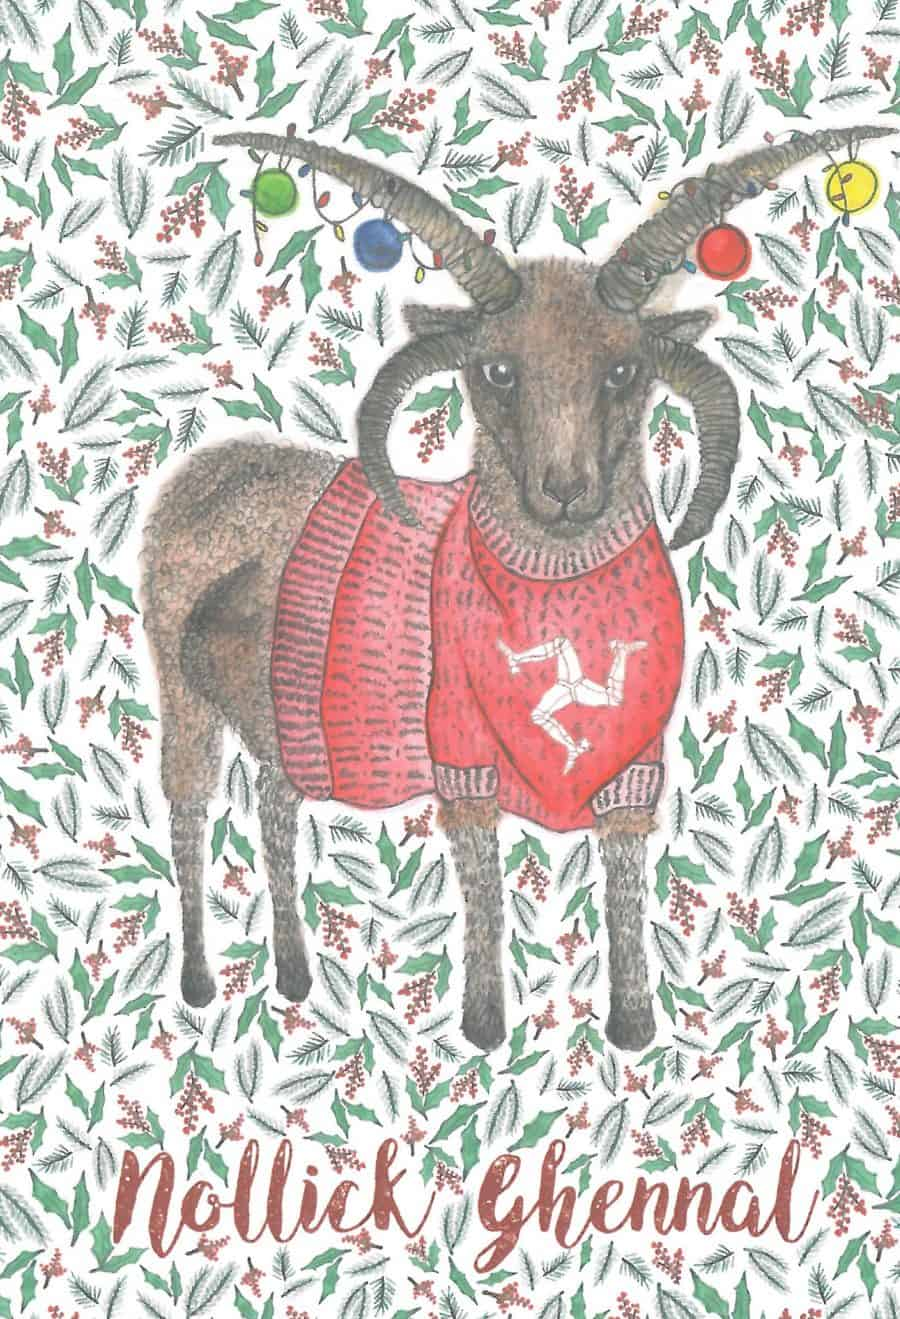 Loghtan Christmas card Image copyright Alice Rose Fayle